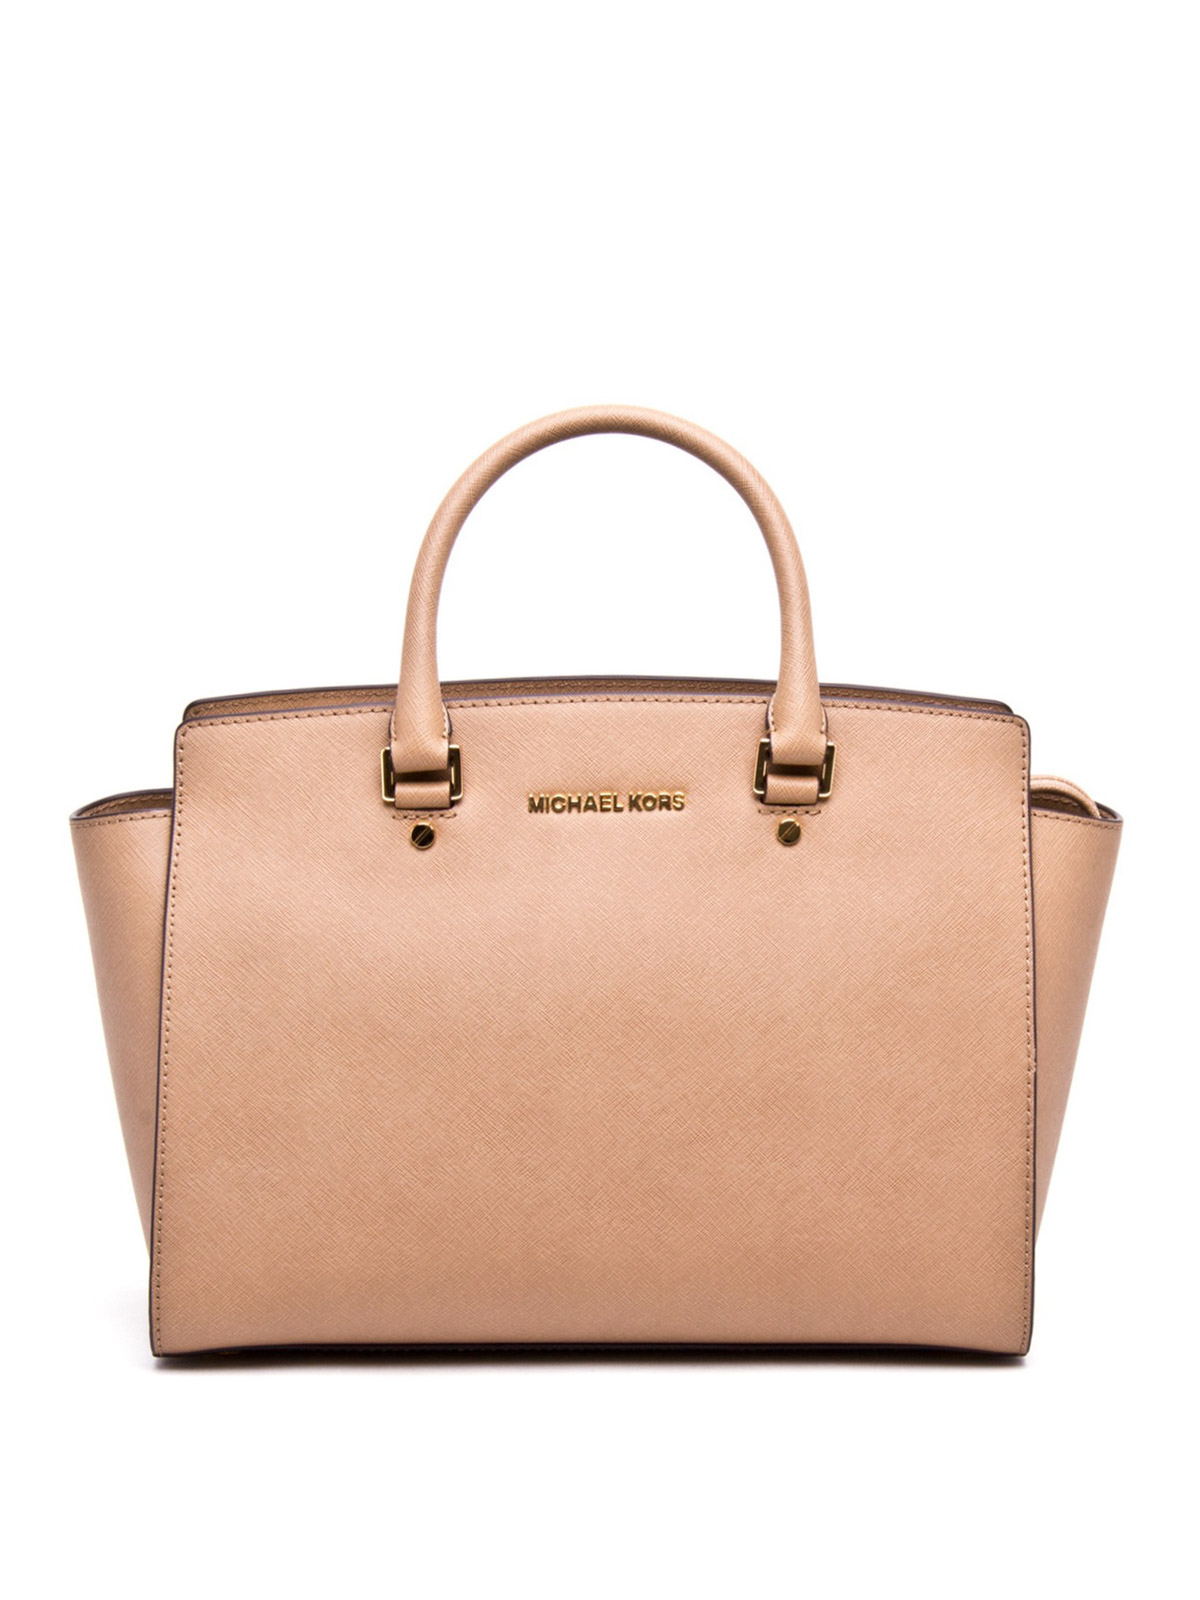 selma large leather tote by michael kors totes bags